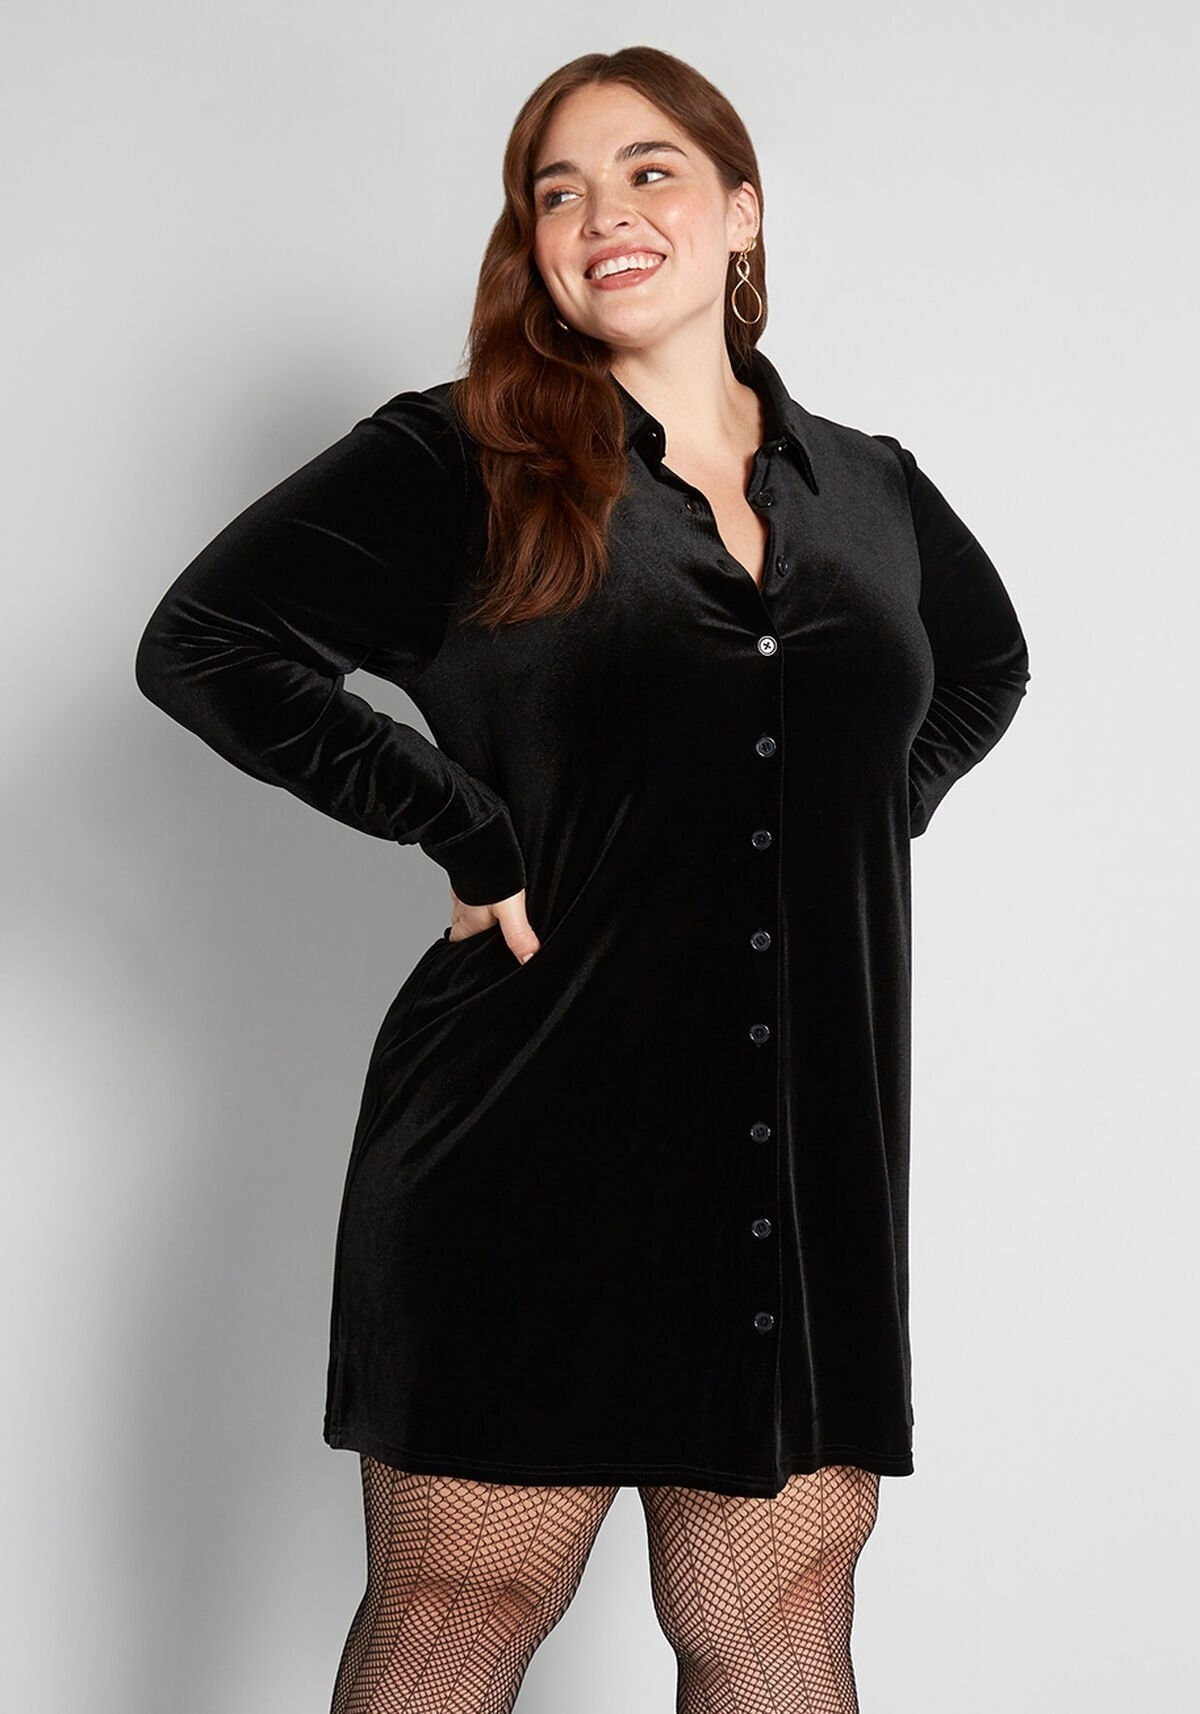 model wearing the sleeved black button-up dress